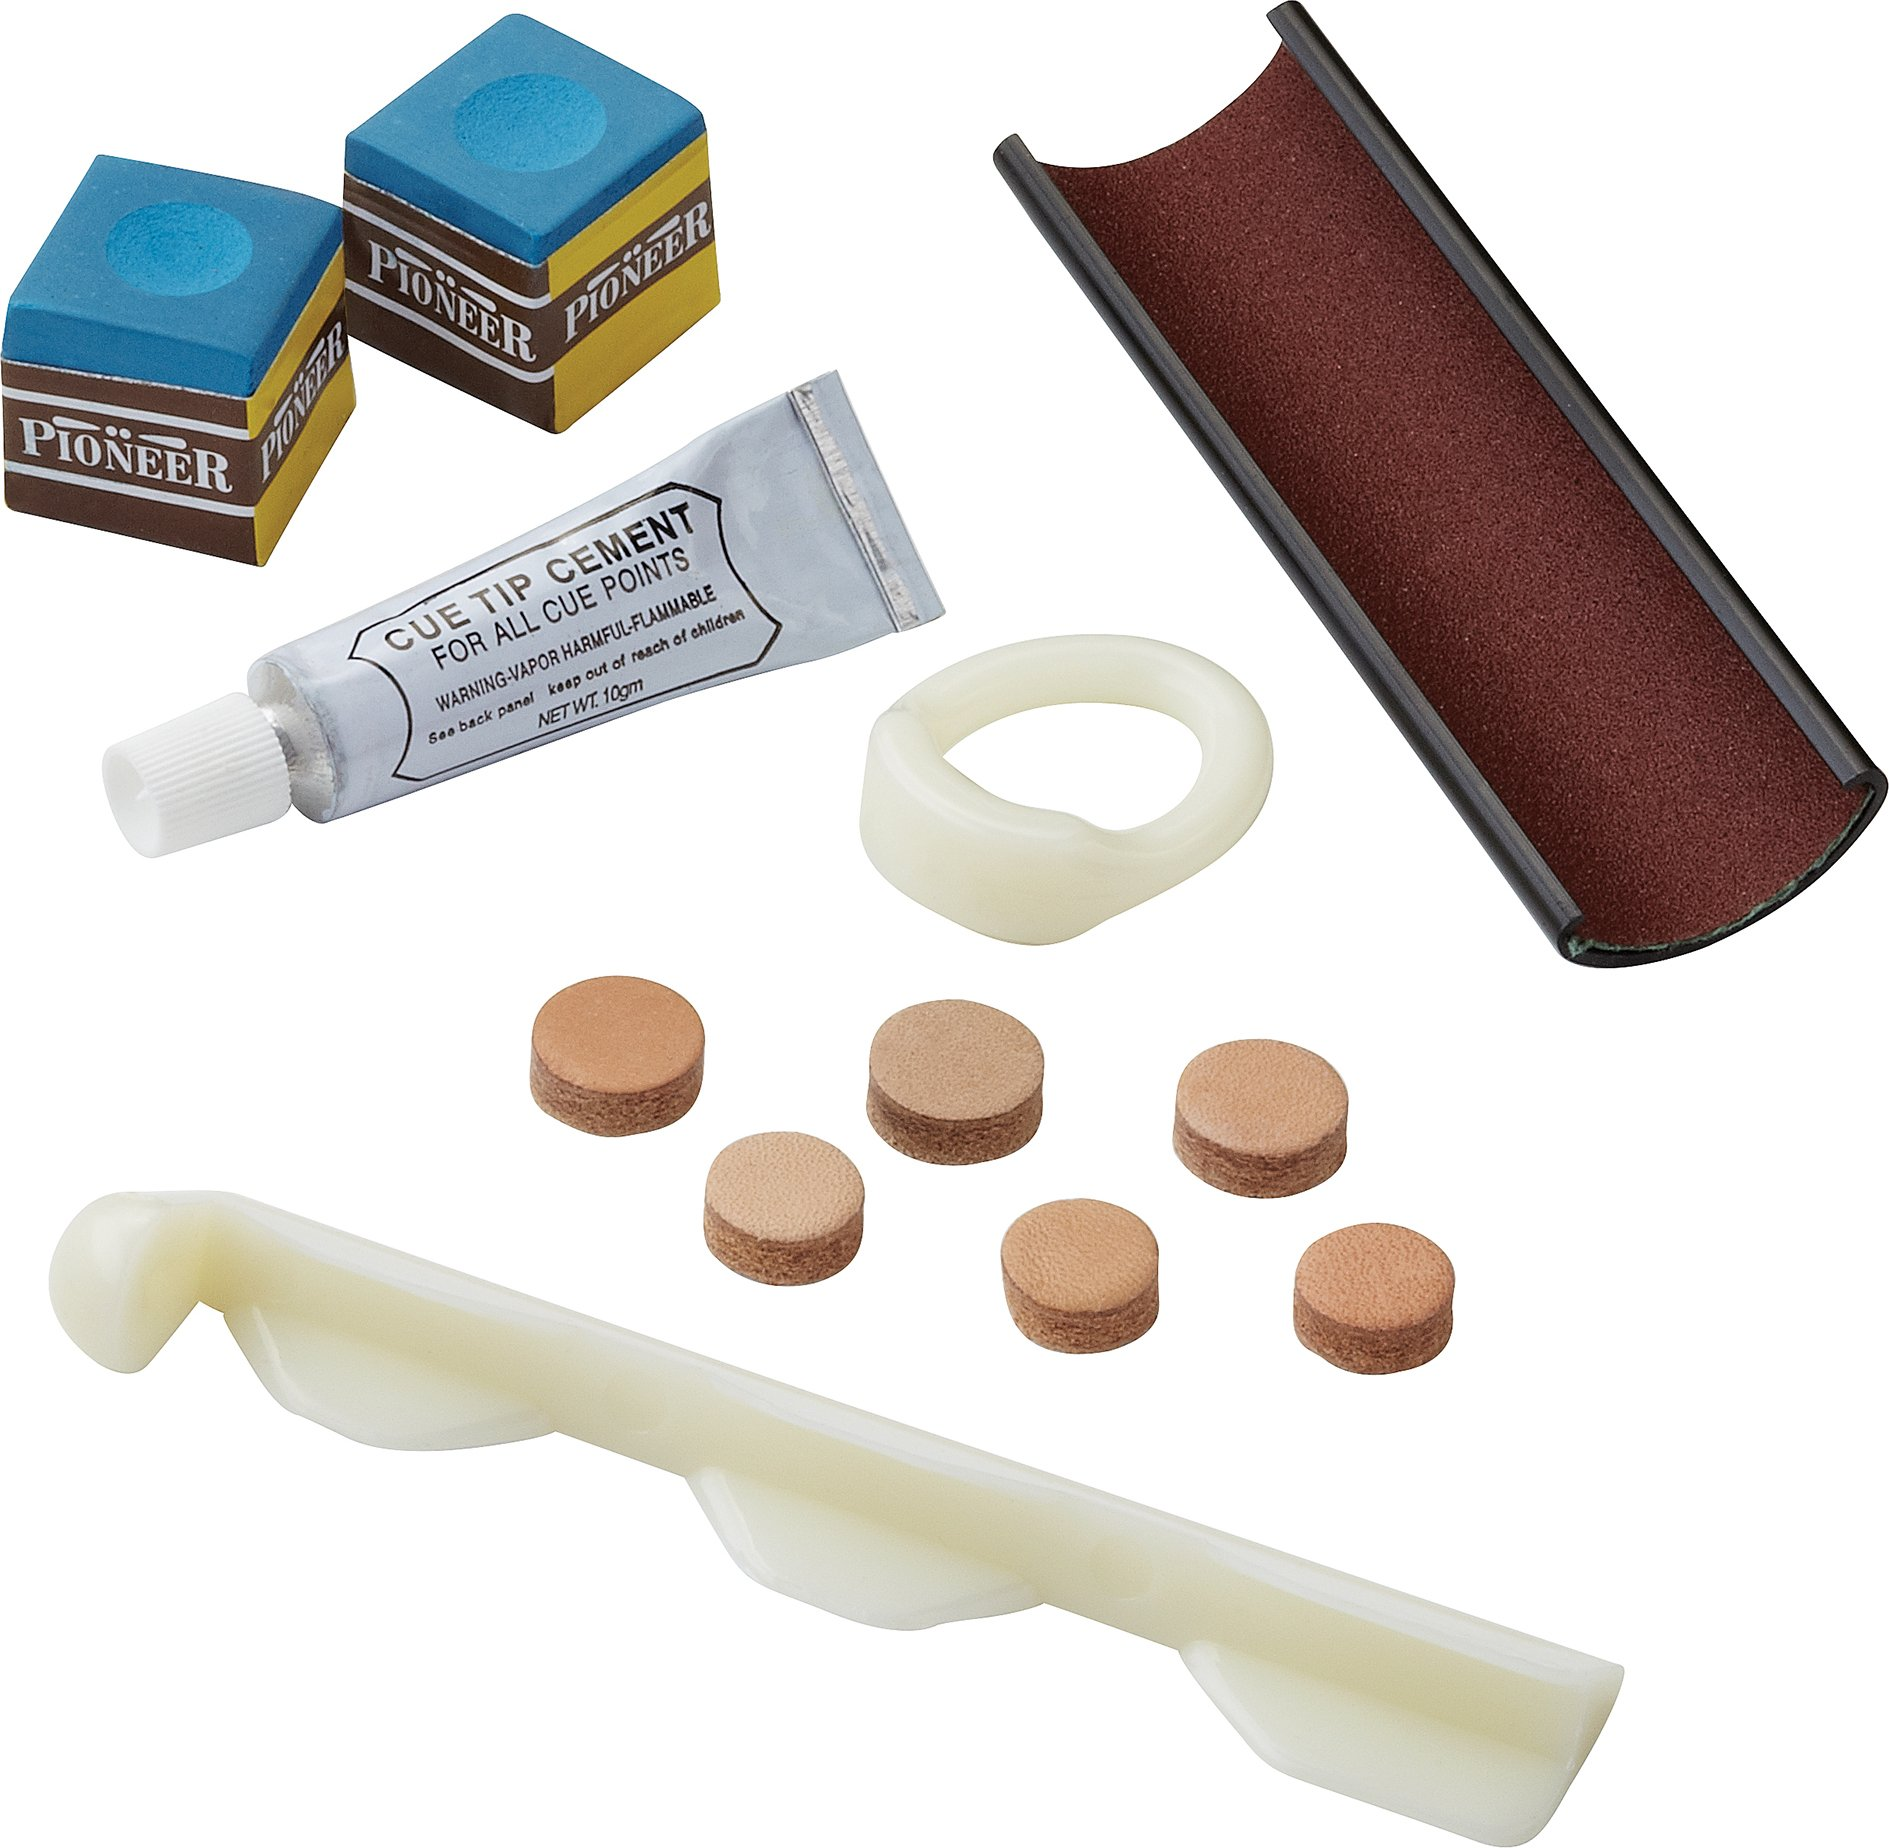 Fat Cat Billiard/Pool Cue Accessory: Billiard Cue Repair/Maintenance Kit